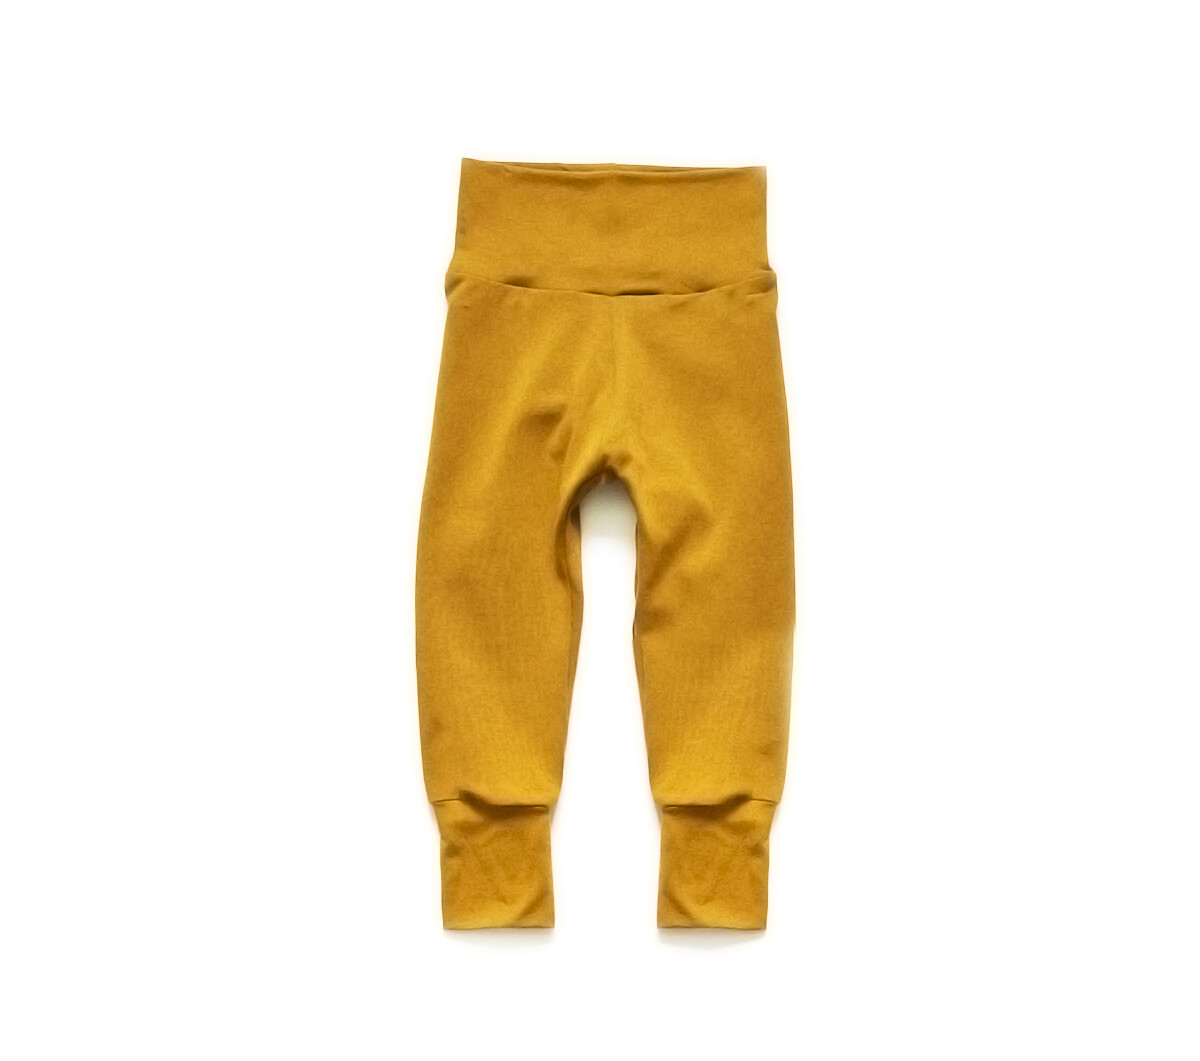 Little Sprout Pants™ in Harvest Gold | Grow With Me Leggings - Tencel